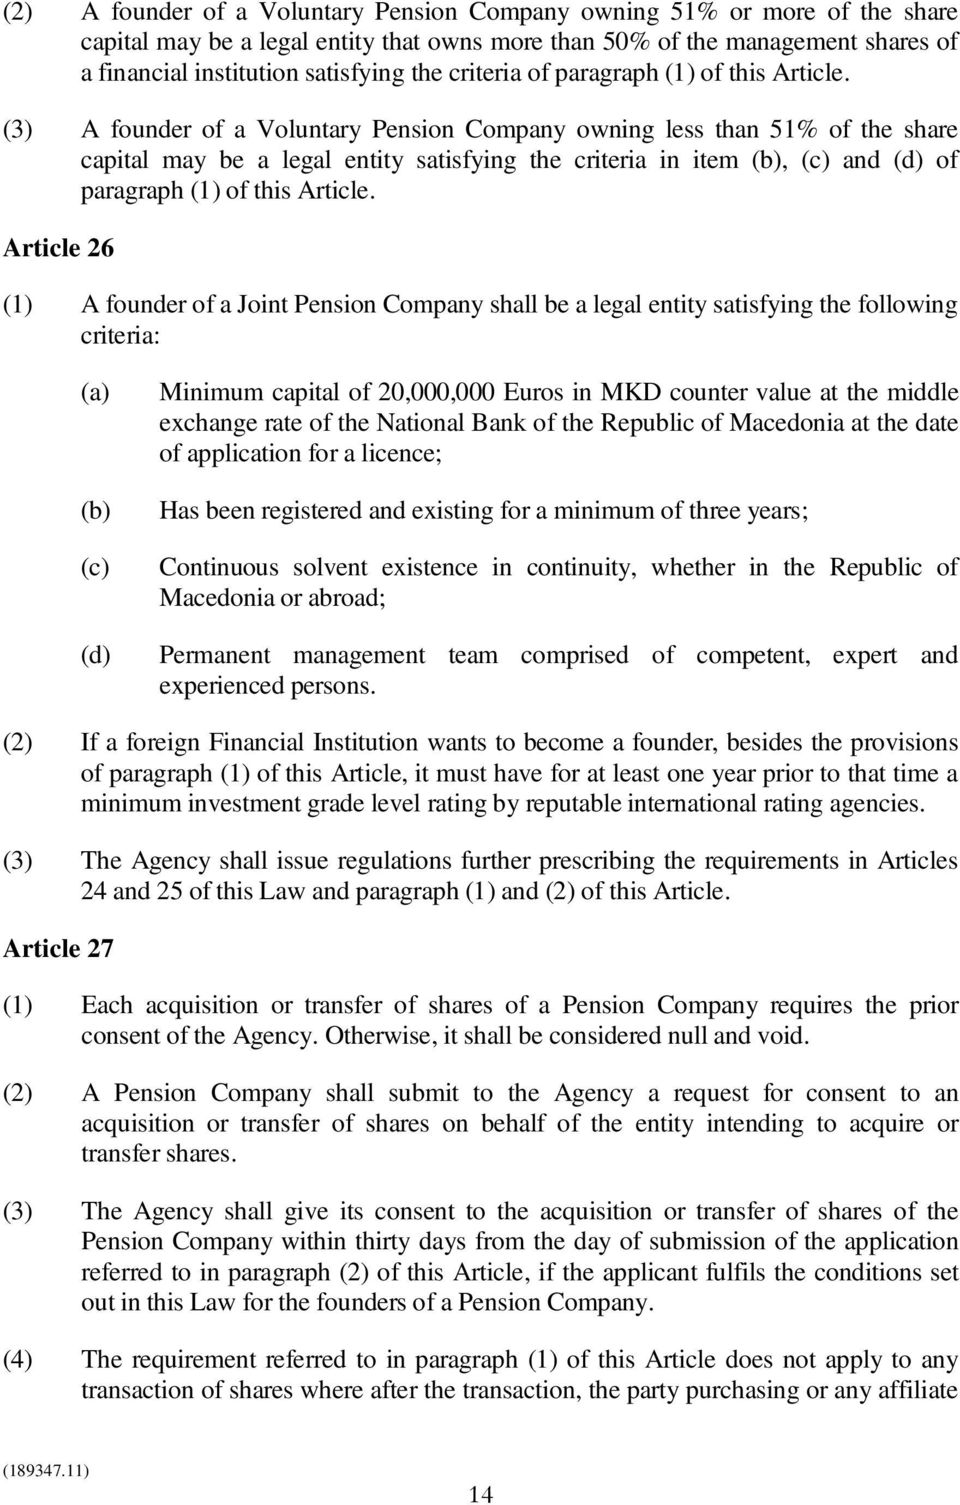 (3) A founder of a Voluntary Pension Company owning less than 51% of the share capital may be a legal entity satisfying the criteria in item (b), (c) and (d) of paragraph (1) of this Article.